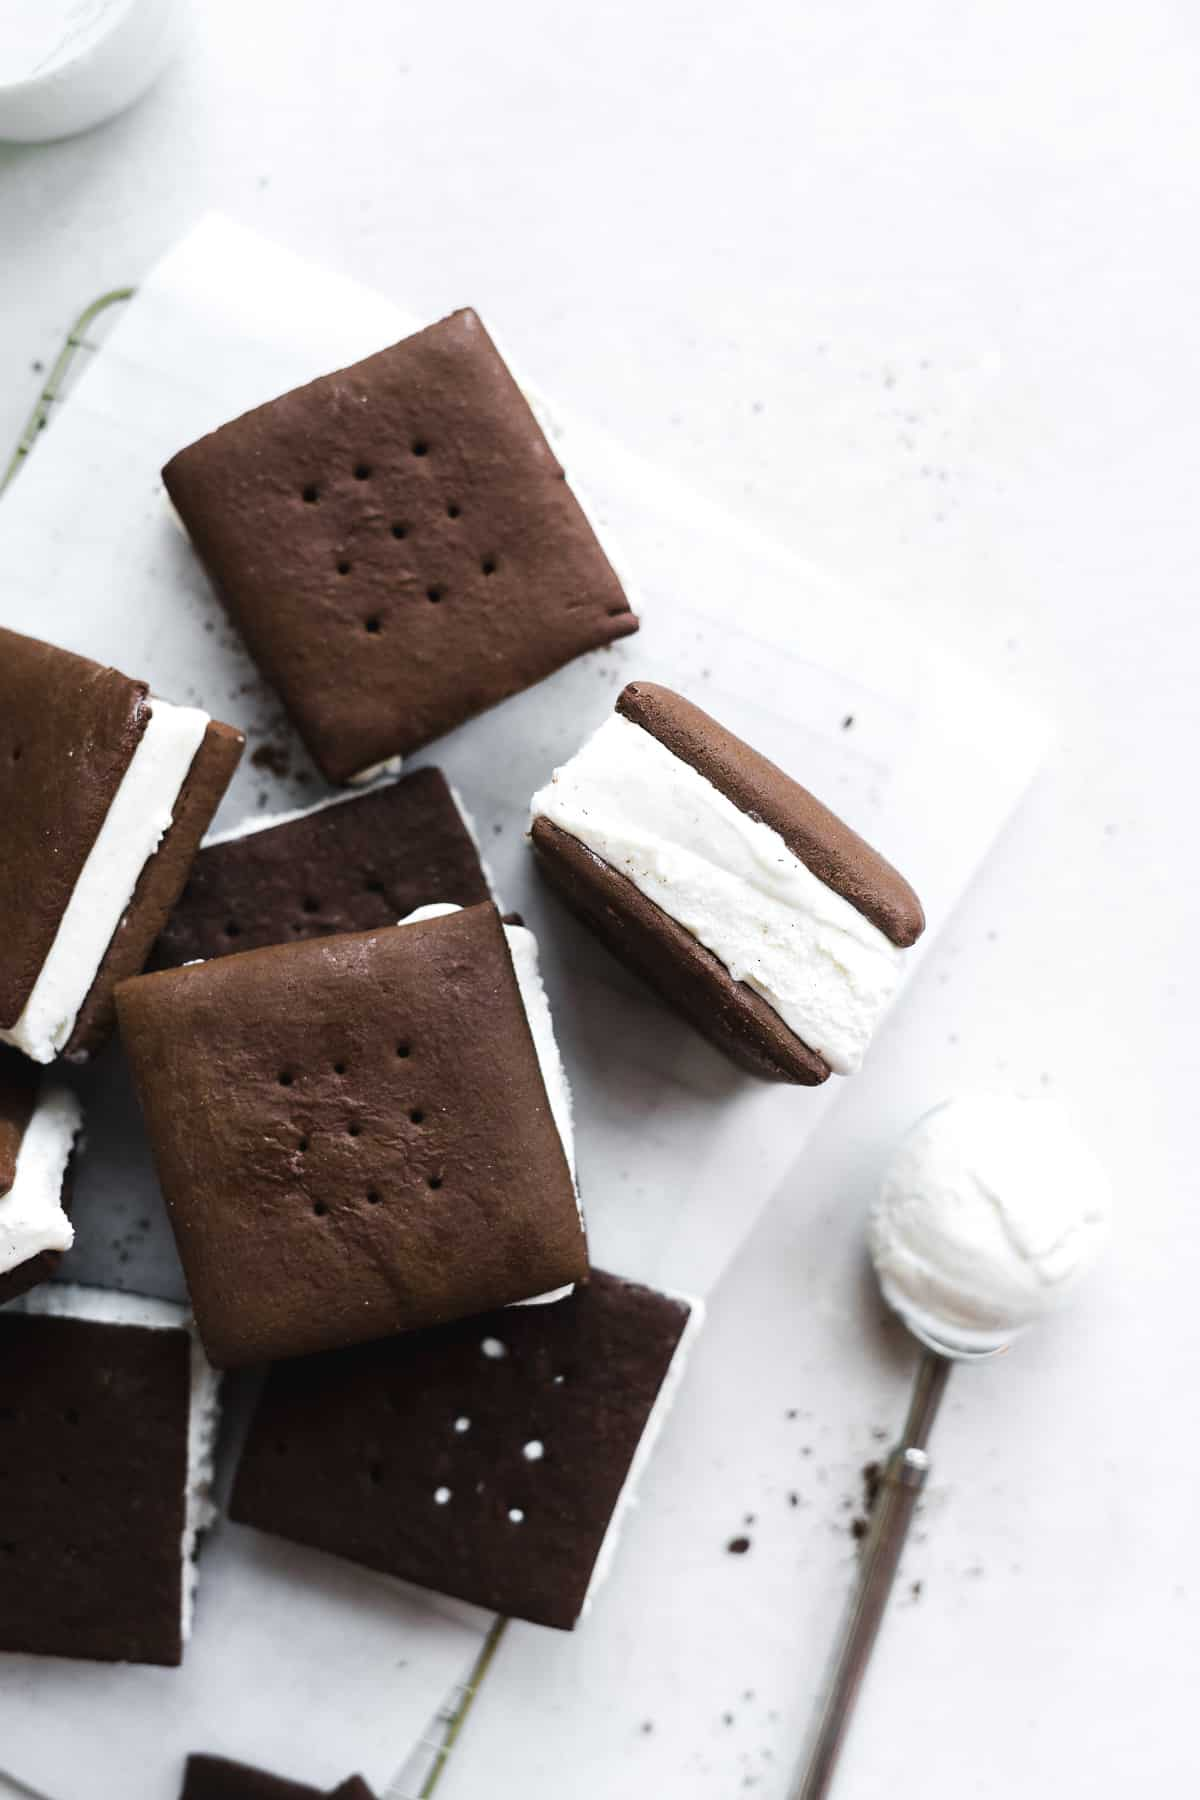 Chocolate ice cream sandwiches scattered on surface with one tipped upwards and an ice cream scoop on the side.